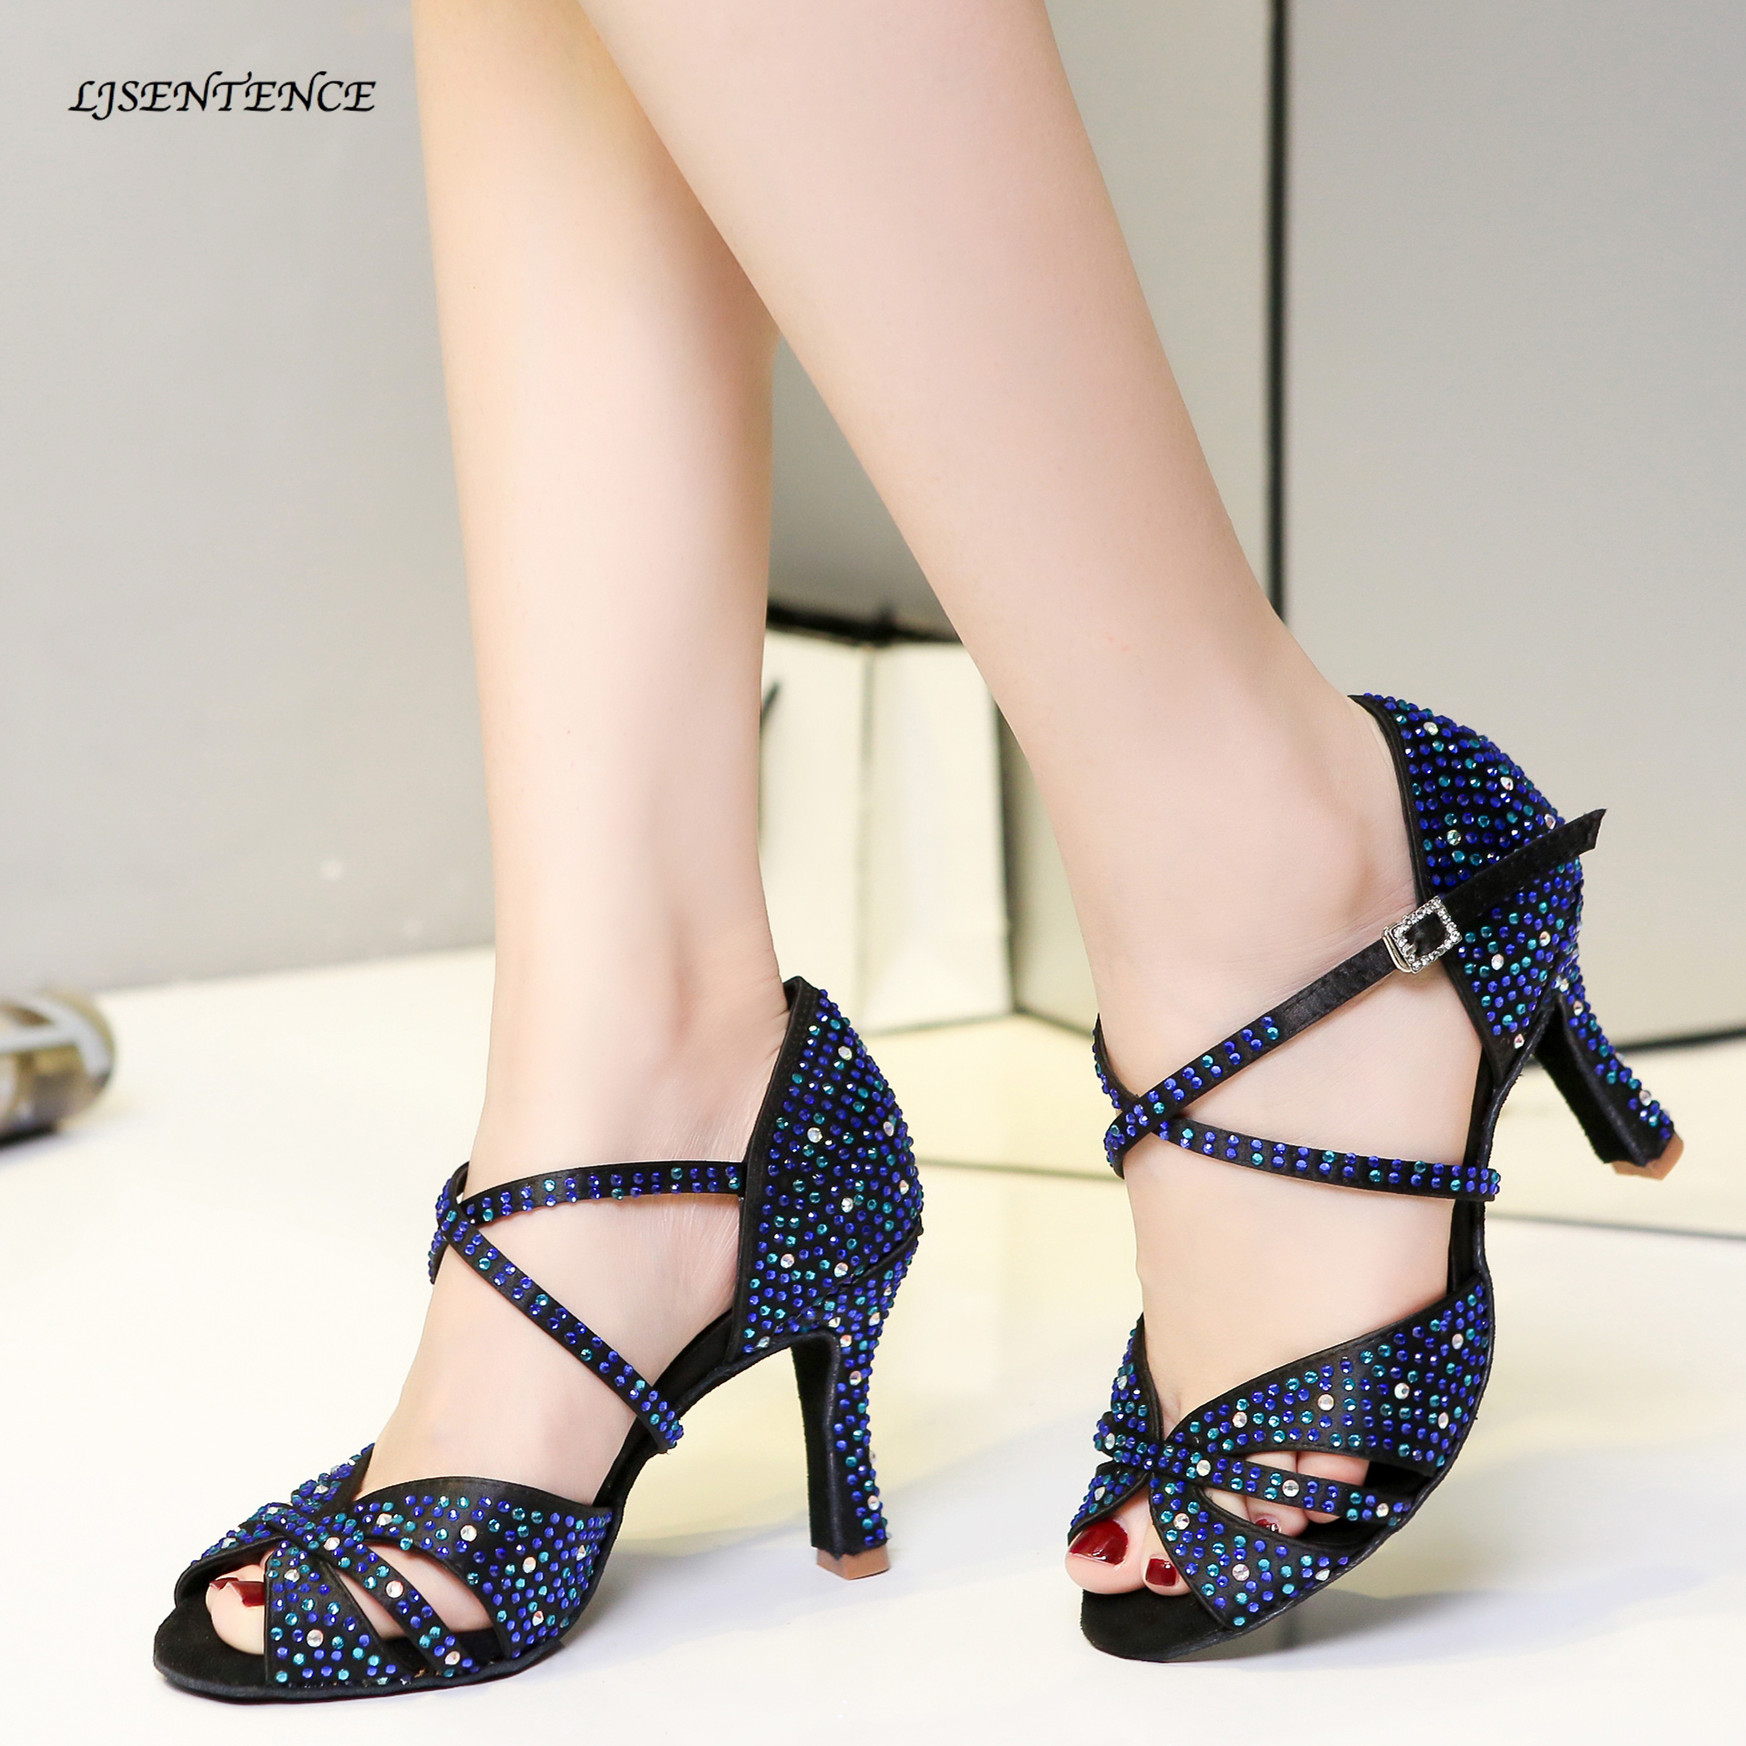 LJSENTENCE Latest Latin Dance Shoes Women Rhinestone Salsa Glitter Ballroom Sandals With Shine Blue Color Height Dance Heels